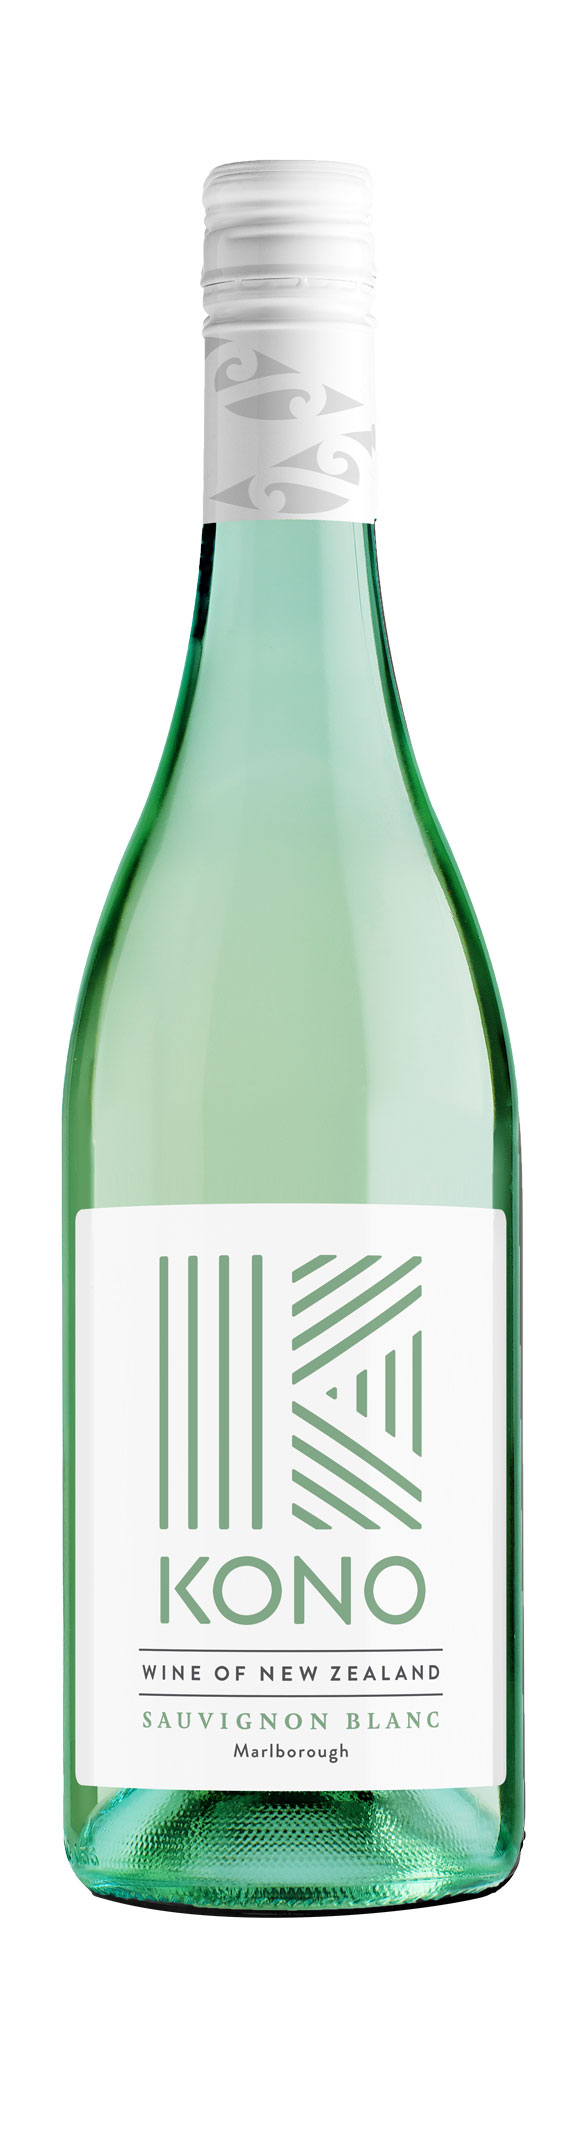 Kono-Wine-Sauvignon-Blanc-ROW_-small.jpg